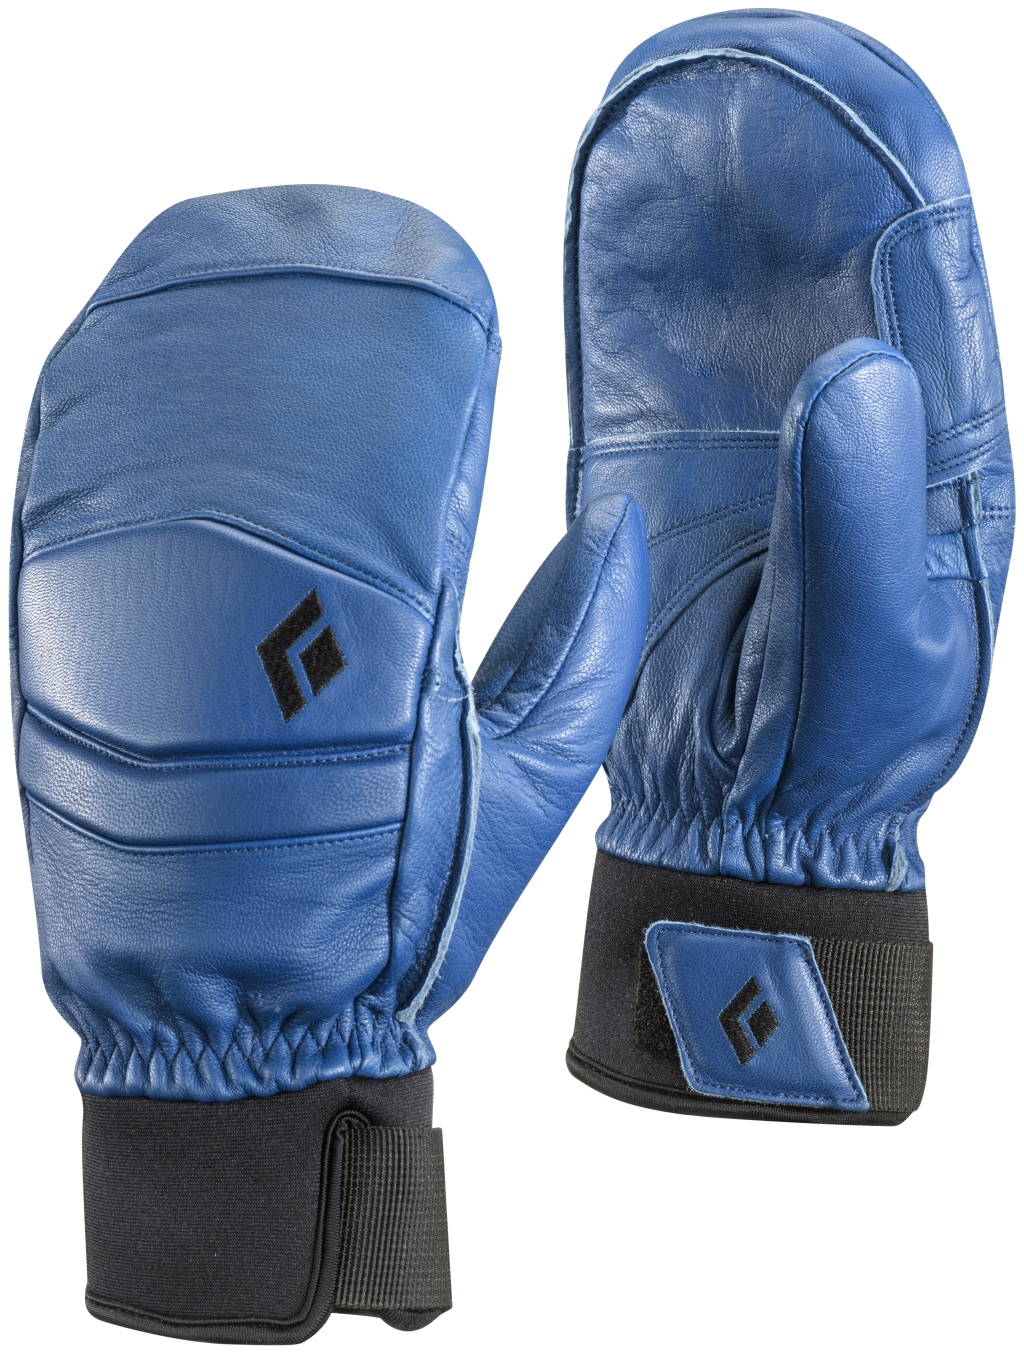 Black Diamond Spark Mitts Denim-30